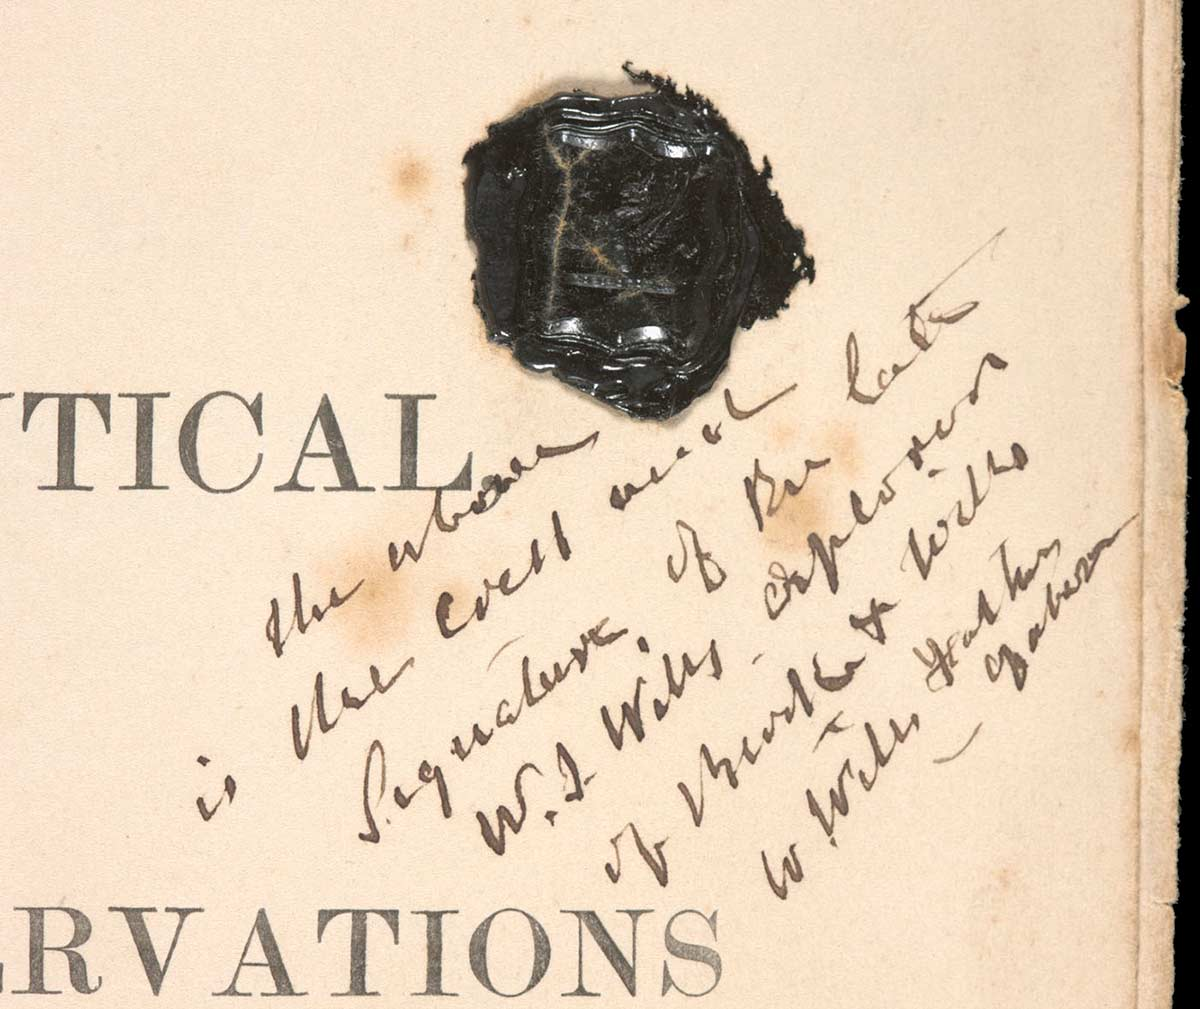 Detail of Georg von Neumayer's Observations showing William Wills' name and black wax seal, dated 31 July 1860.